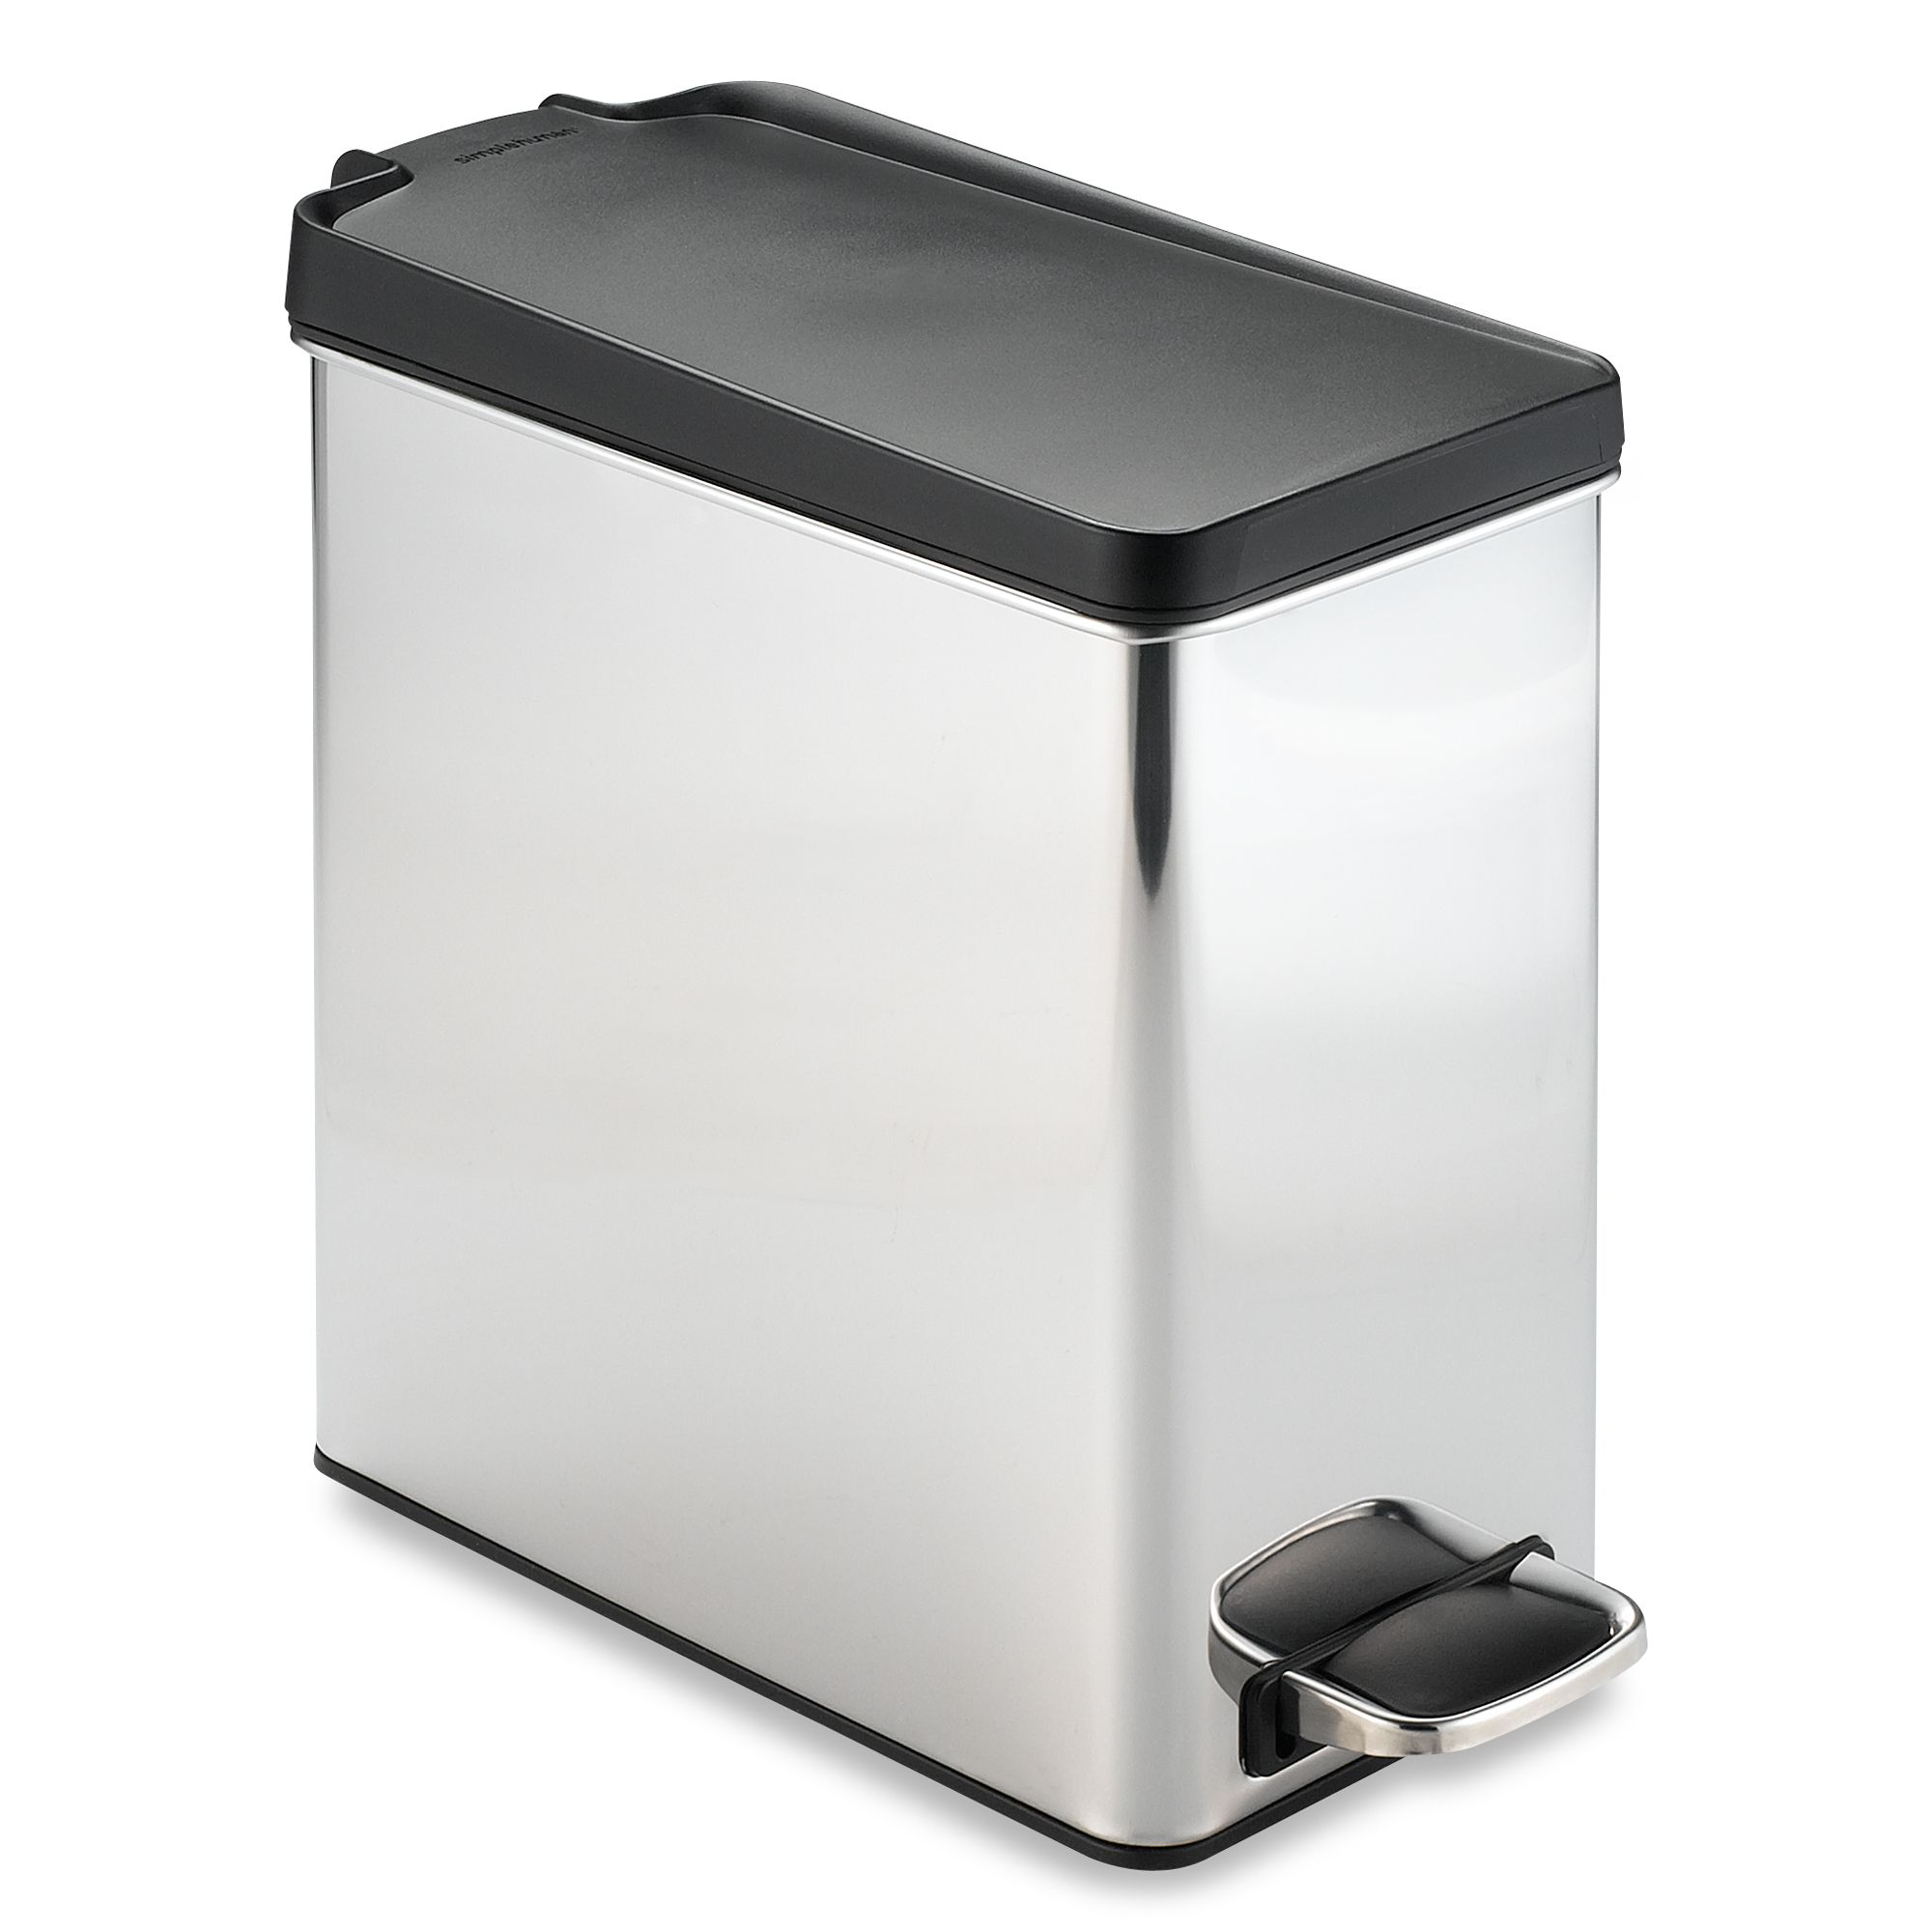 simplehuman brushed stainless steel 10 liter profile step trash